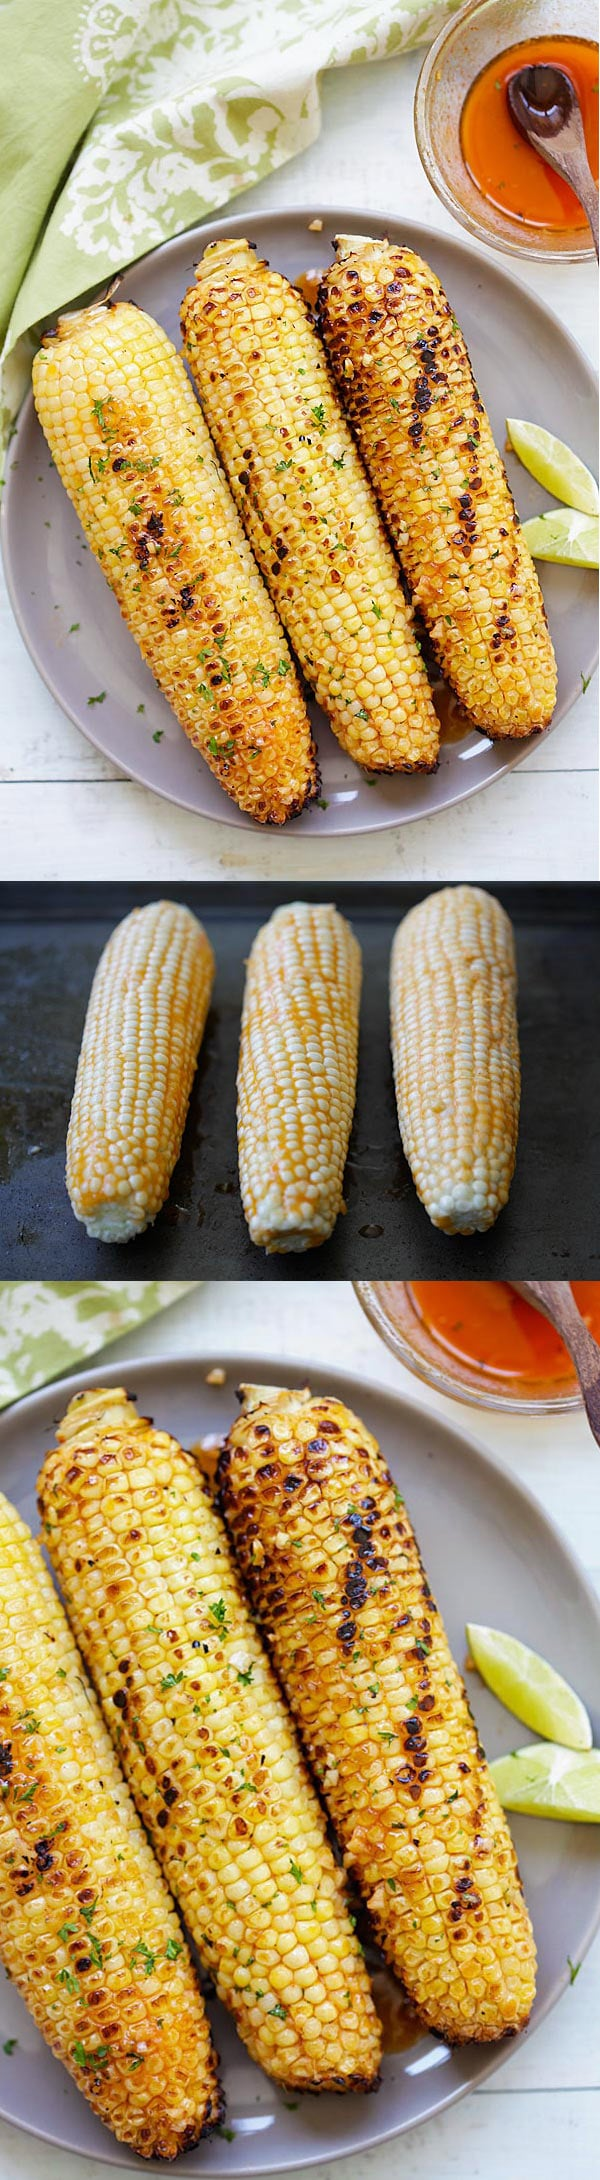 Honey Sriracha Butter Grilled Corn - buttery, sweet and slightly spicy grilled corns with honey sriracha butter. So easy and so good! | rasamalaysia.com